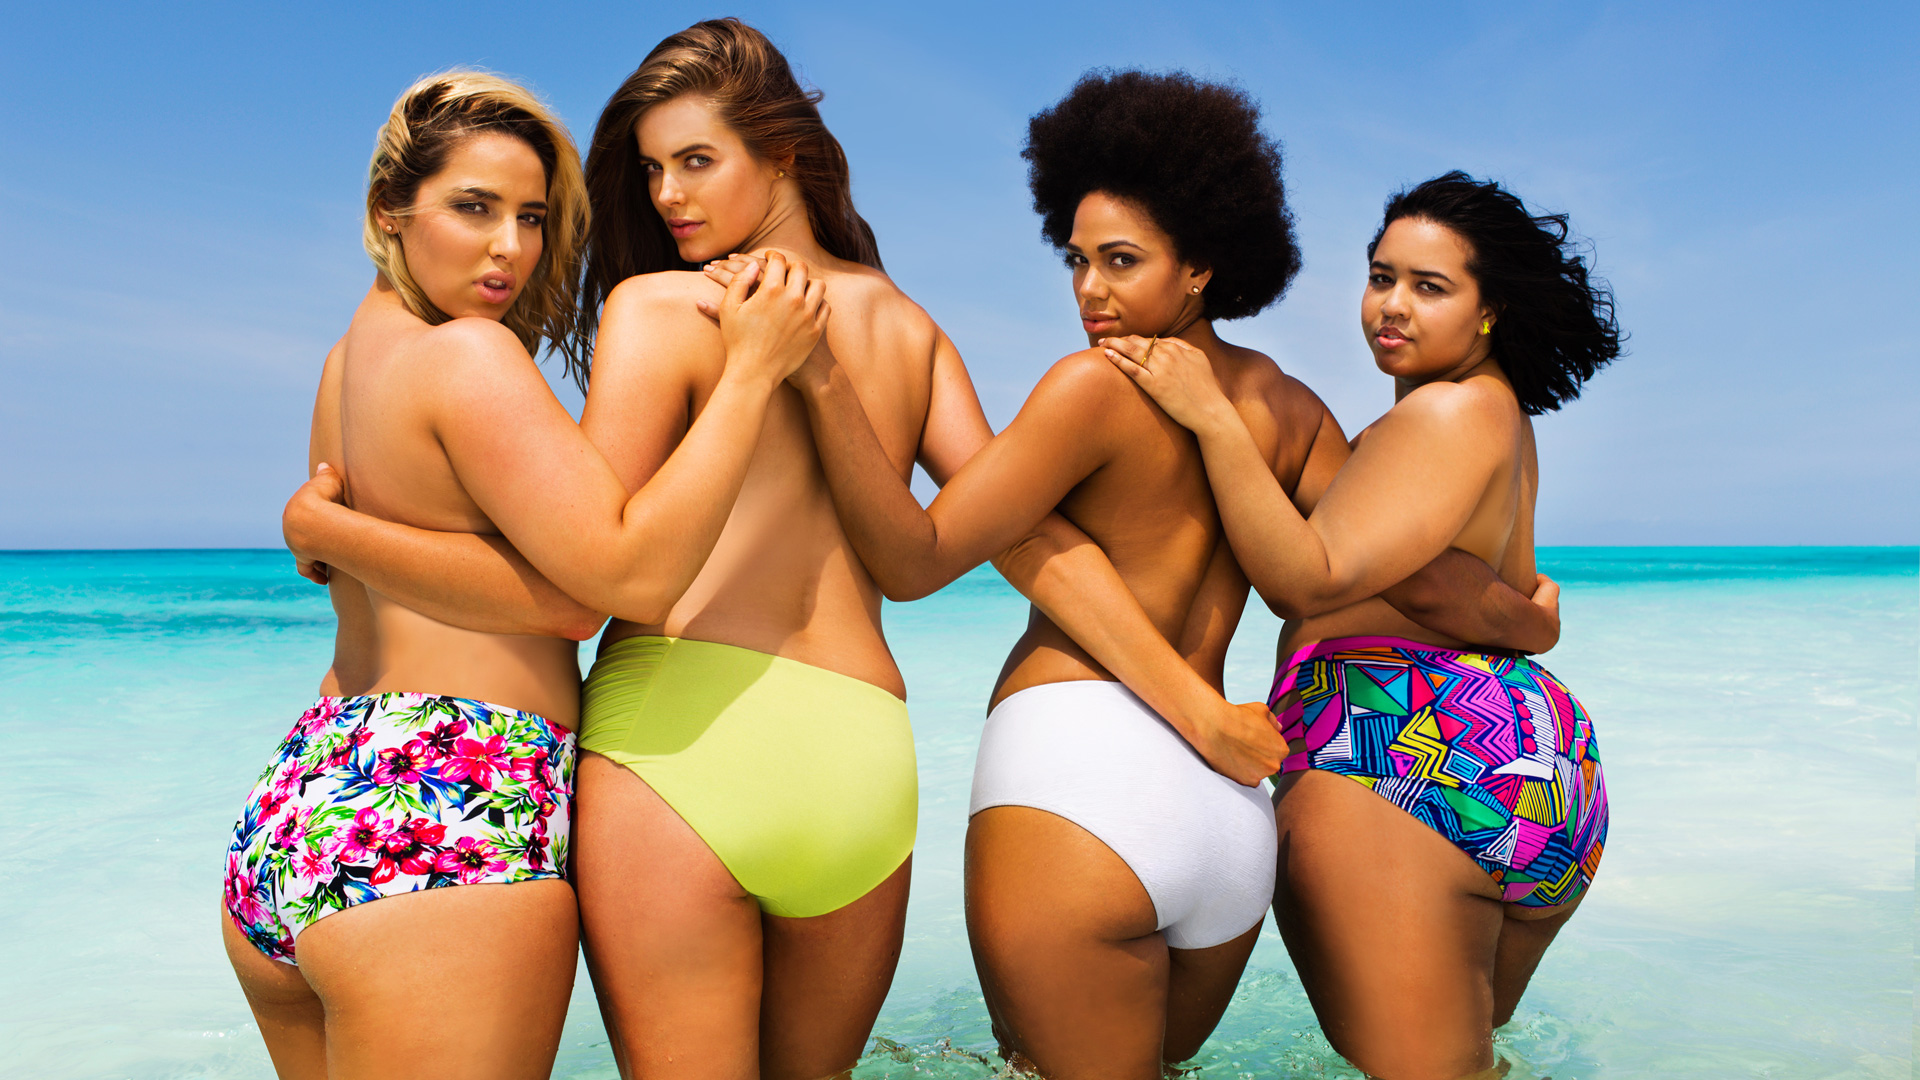 Plus-Size Models on Sexy Swimwear Calendar